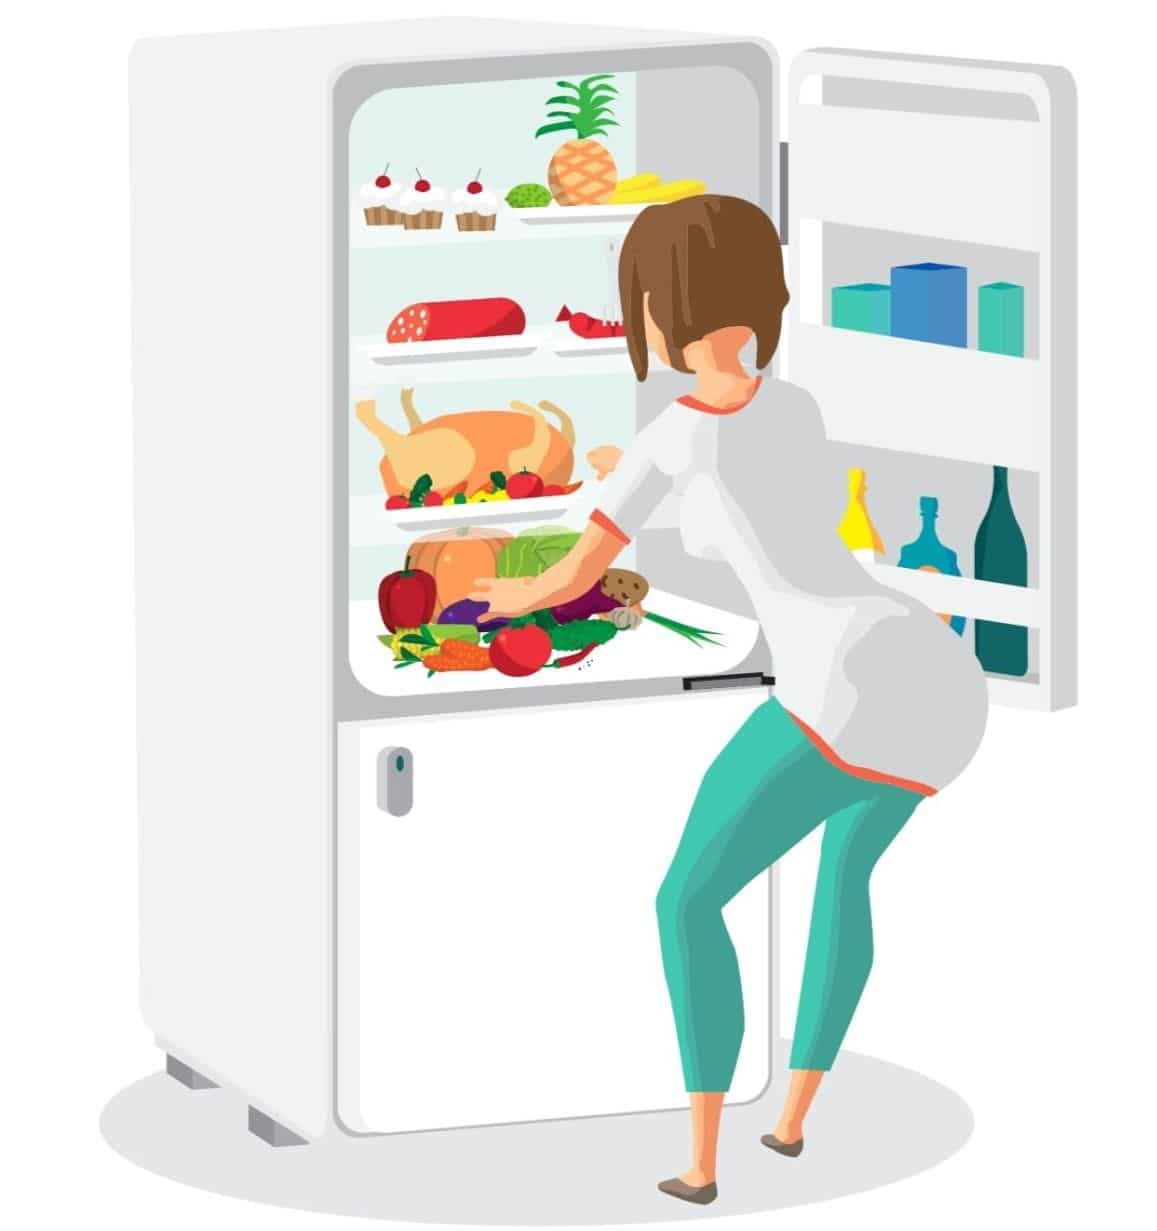 A picture showing a turkey in the refrigerator